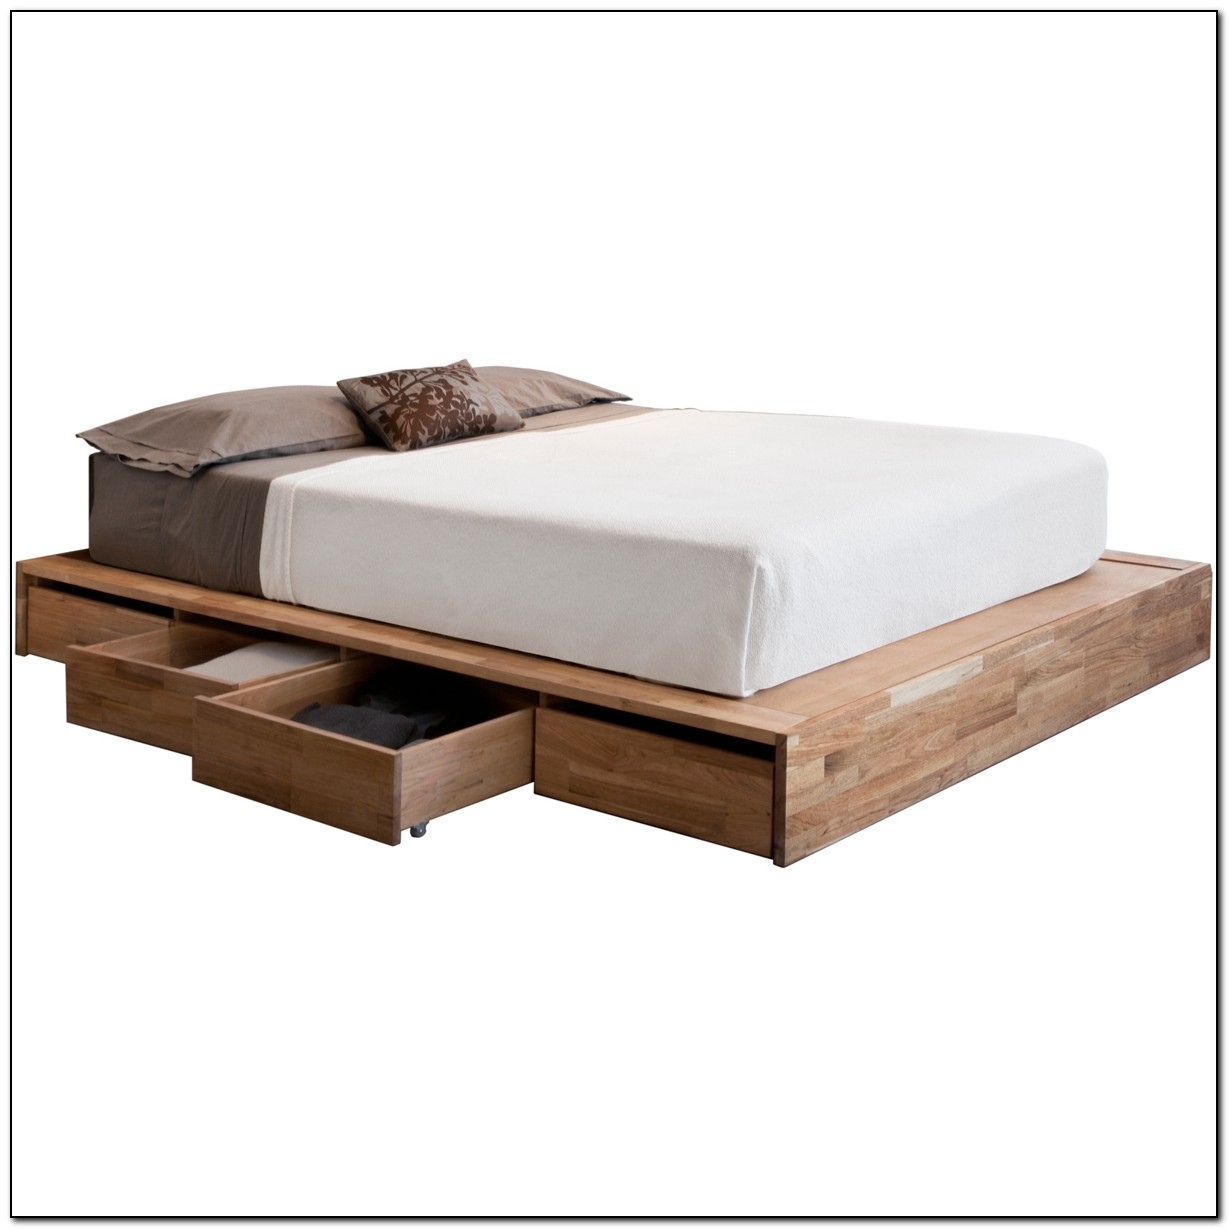 Platform Bed With Drawers Full Size Platform Bed With Drawers - Beds : Home Design